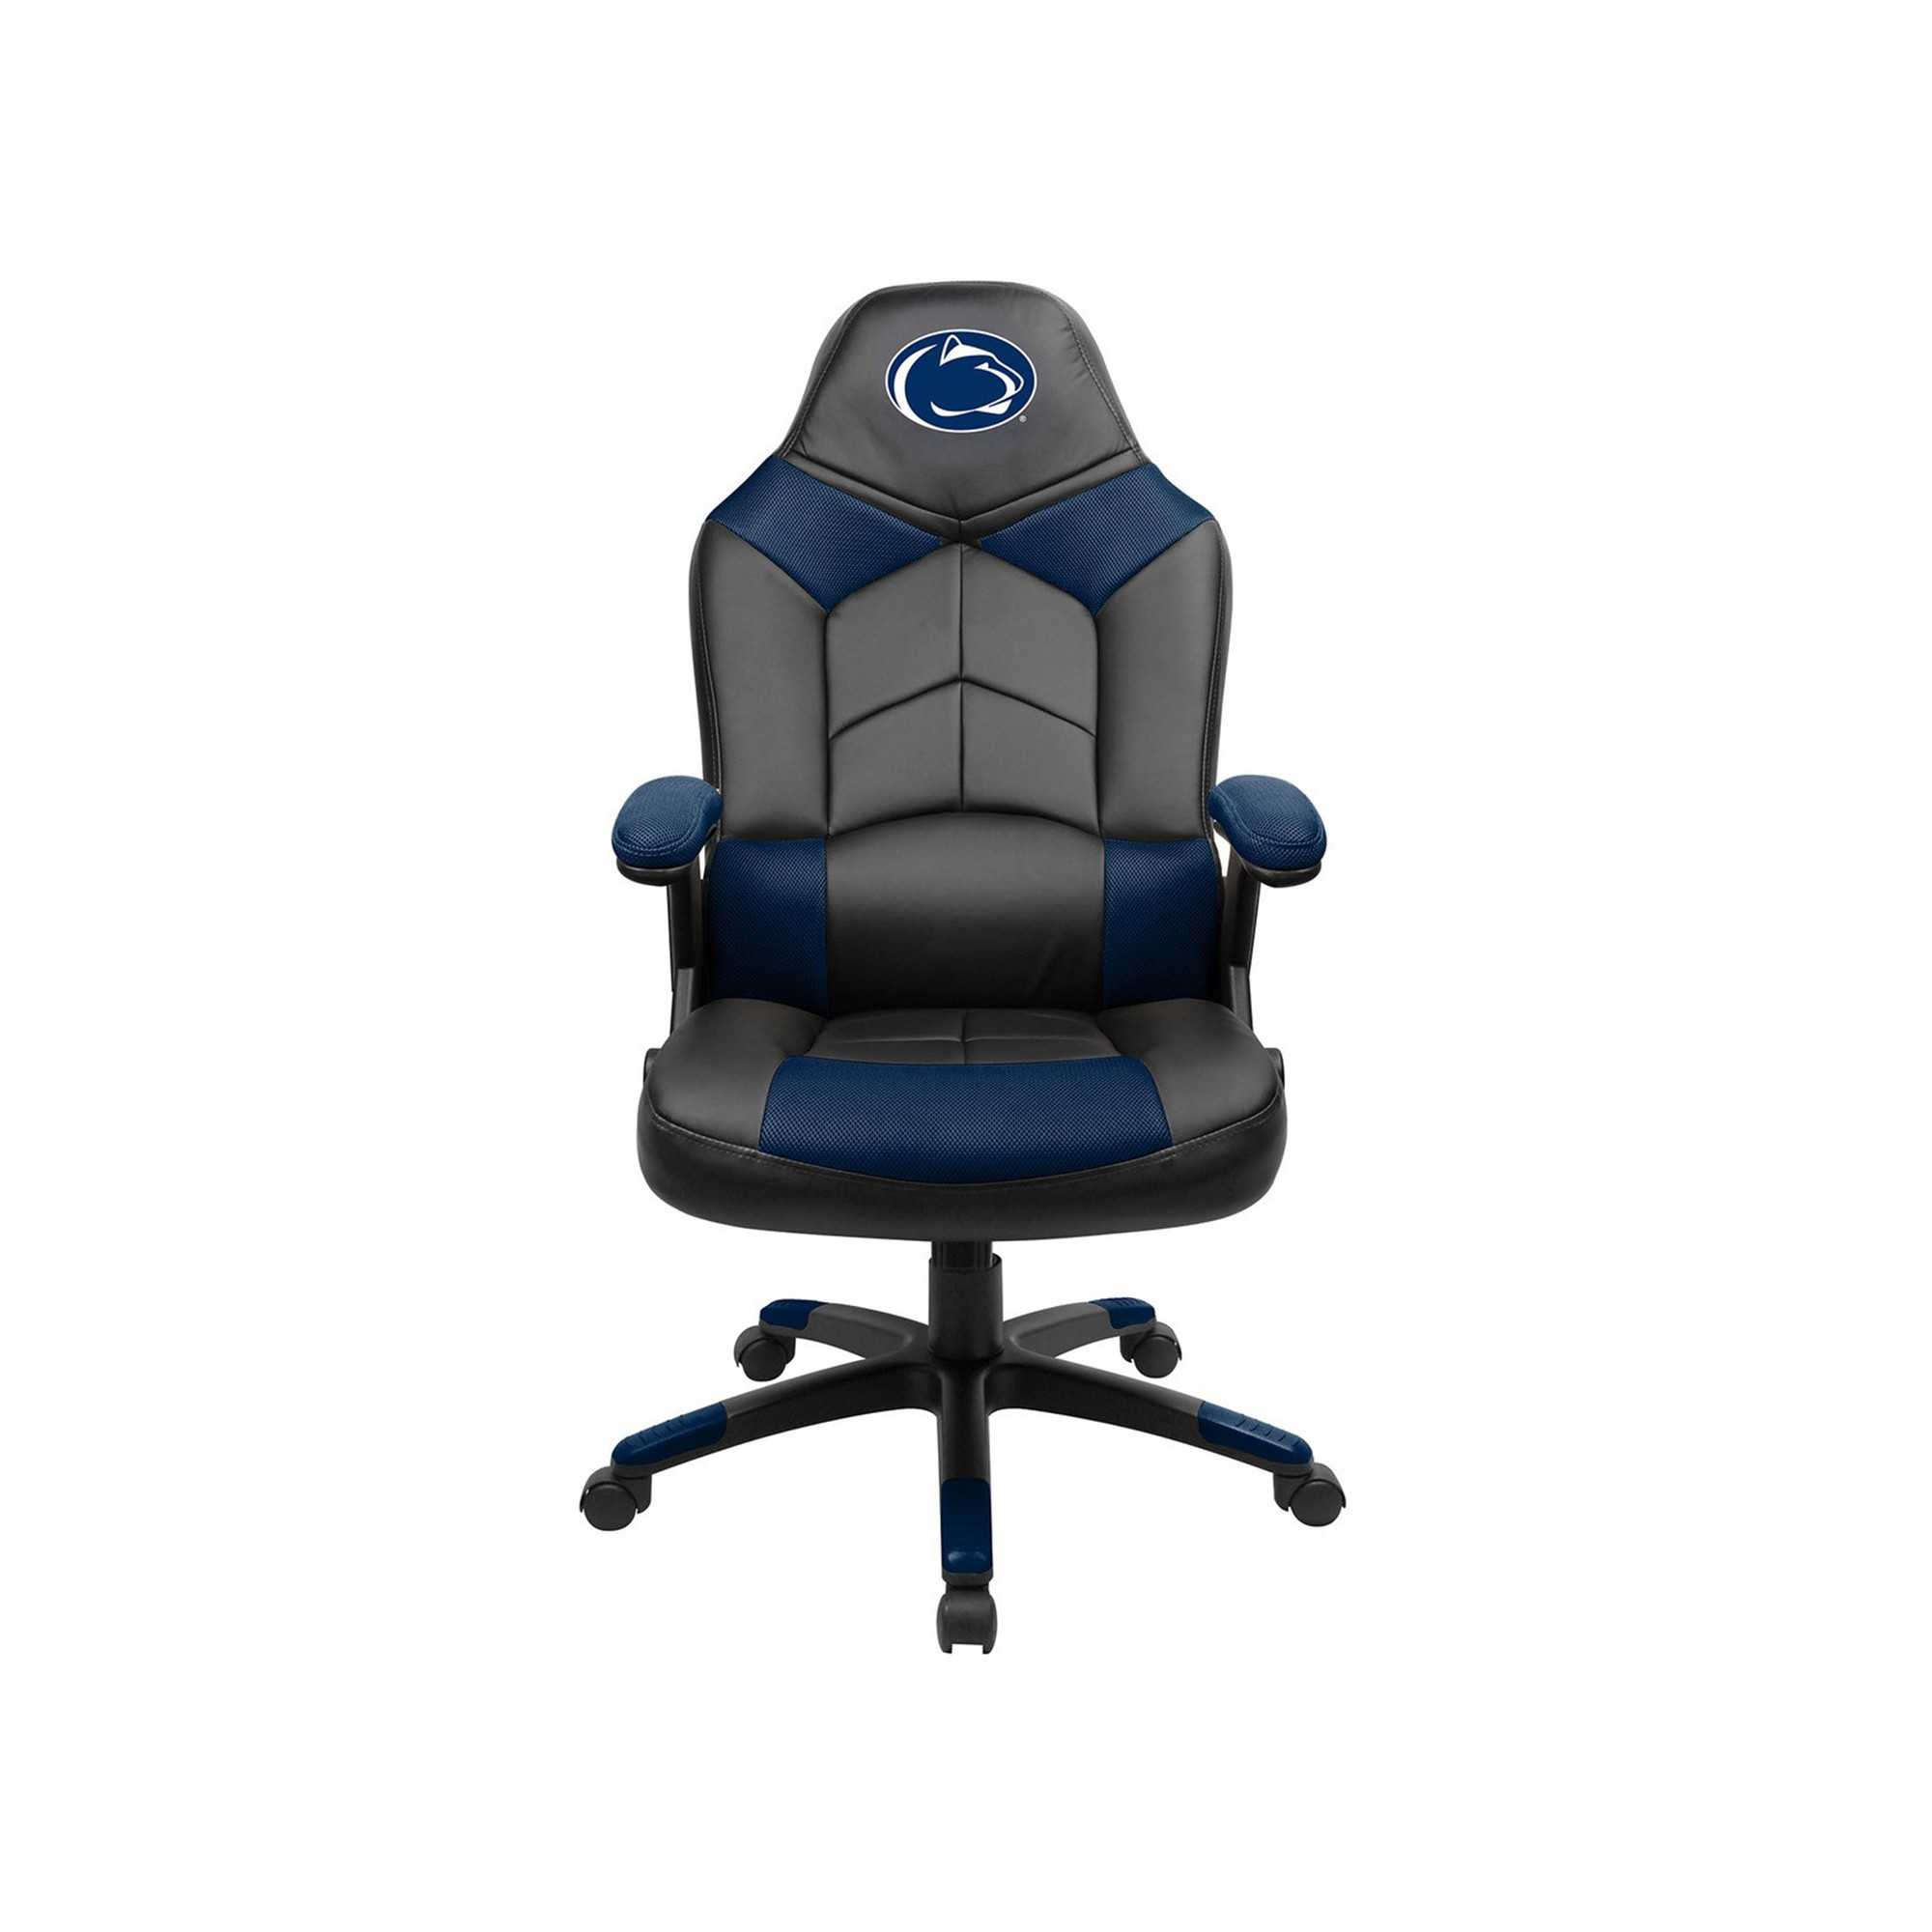 PENN STATE OVERSIZED GAMEING CHAIR